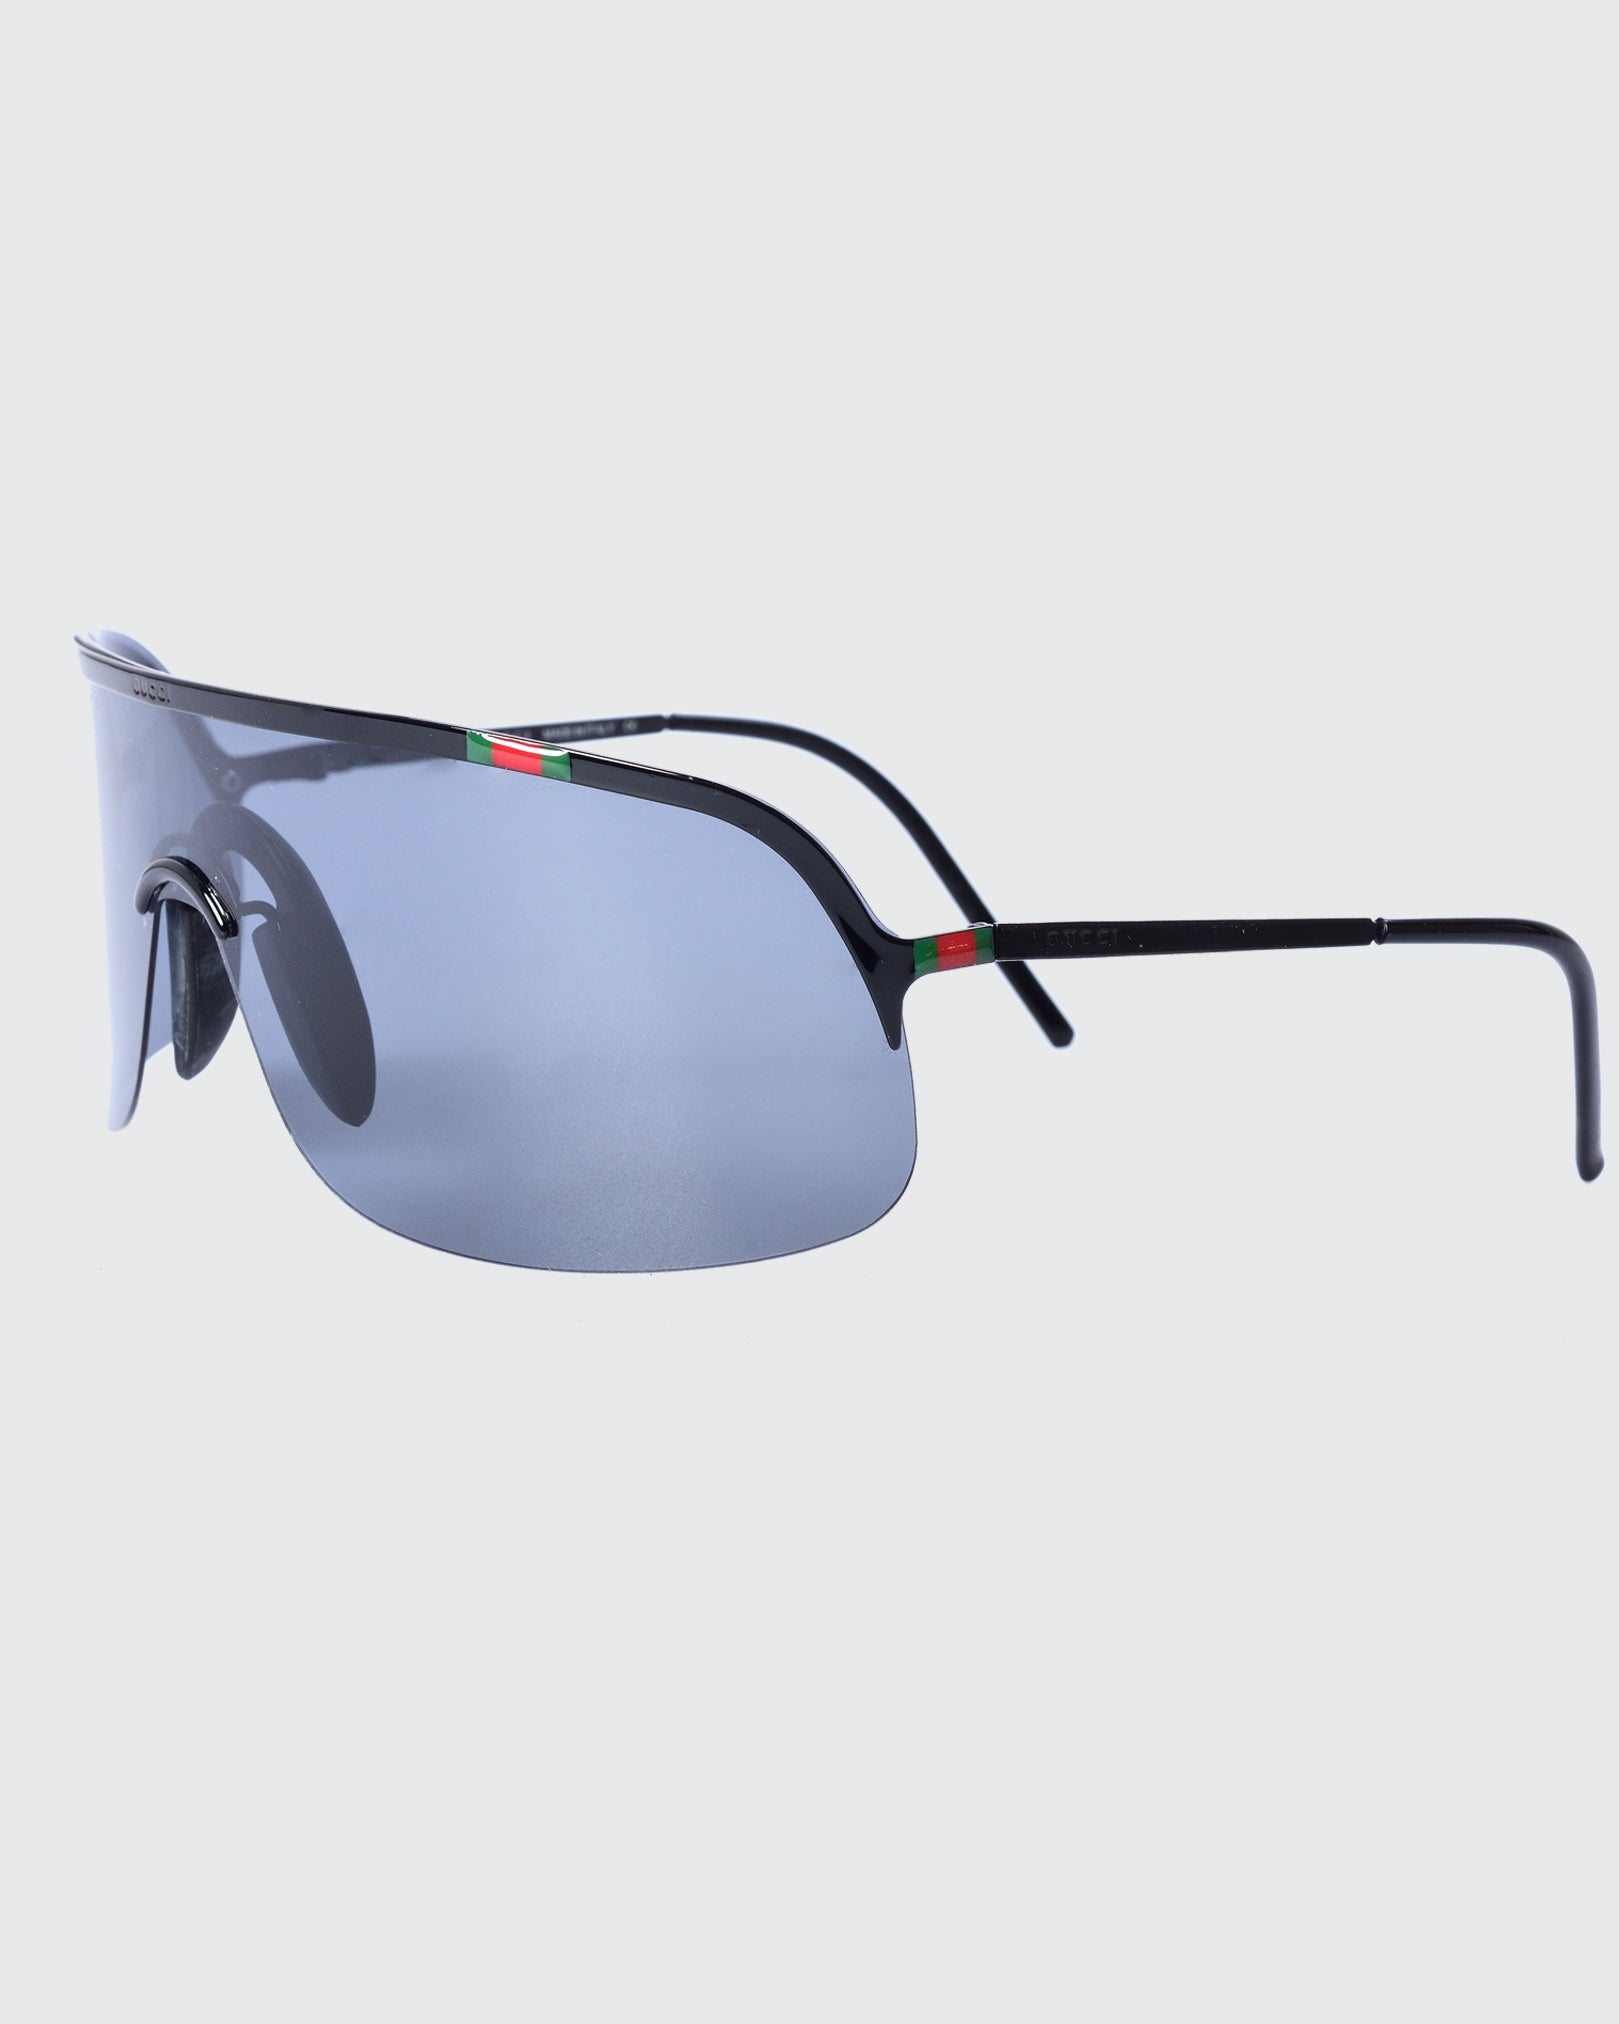 Gucci Unisex Black Sunglasses